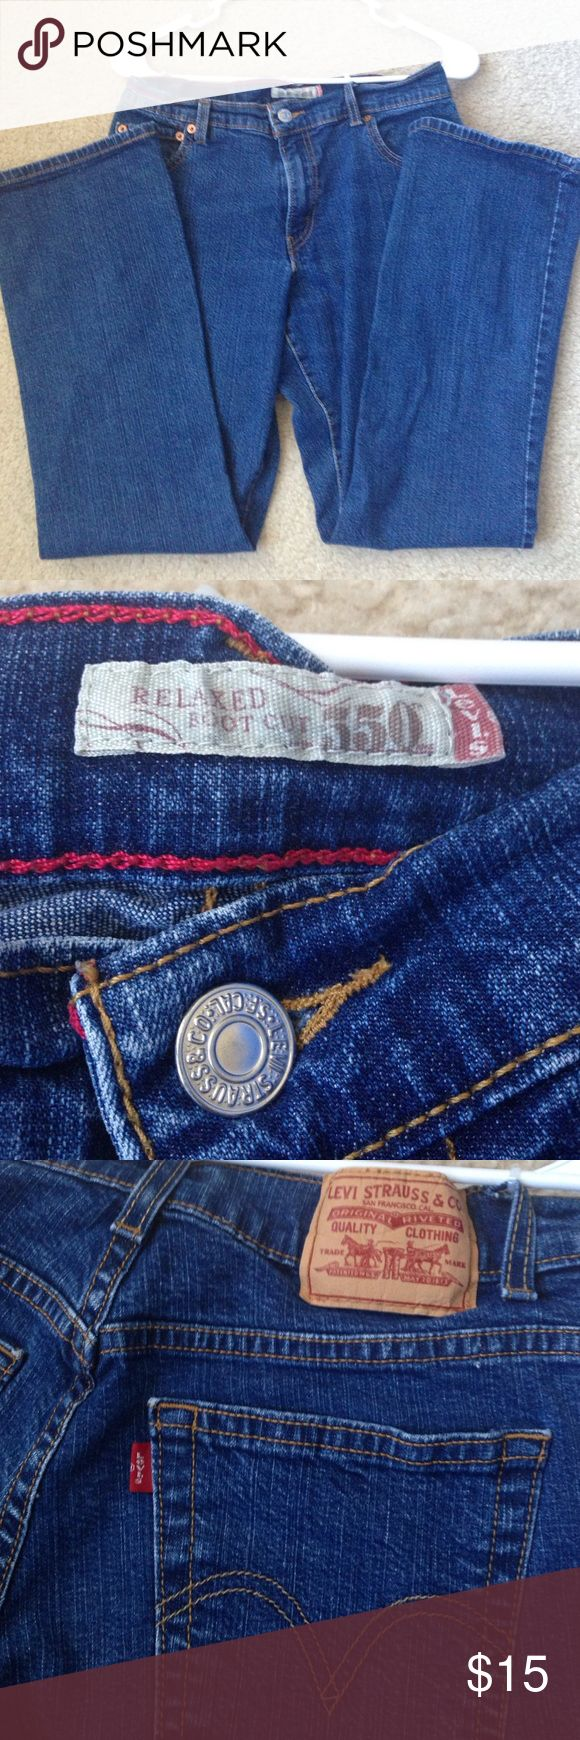 Levi's 550 Relaxed Boot Cut jeans Size 6s Levi's 550 jeans 👖.  In excellent condition! Levi's Jeans Boot Cut